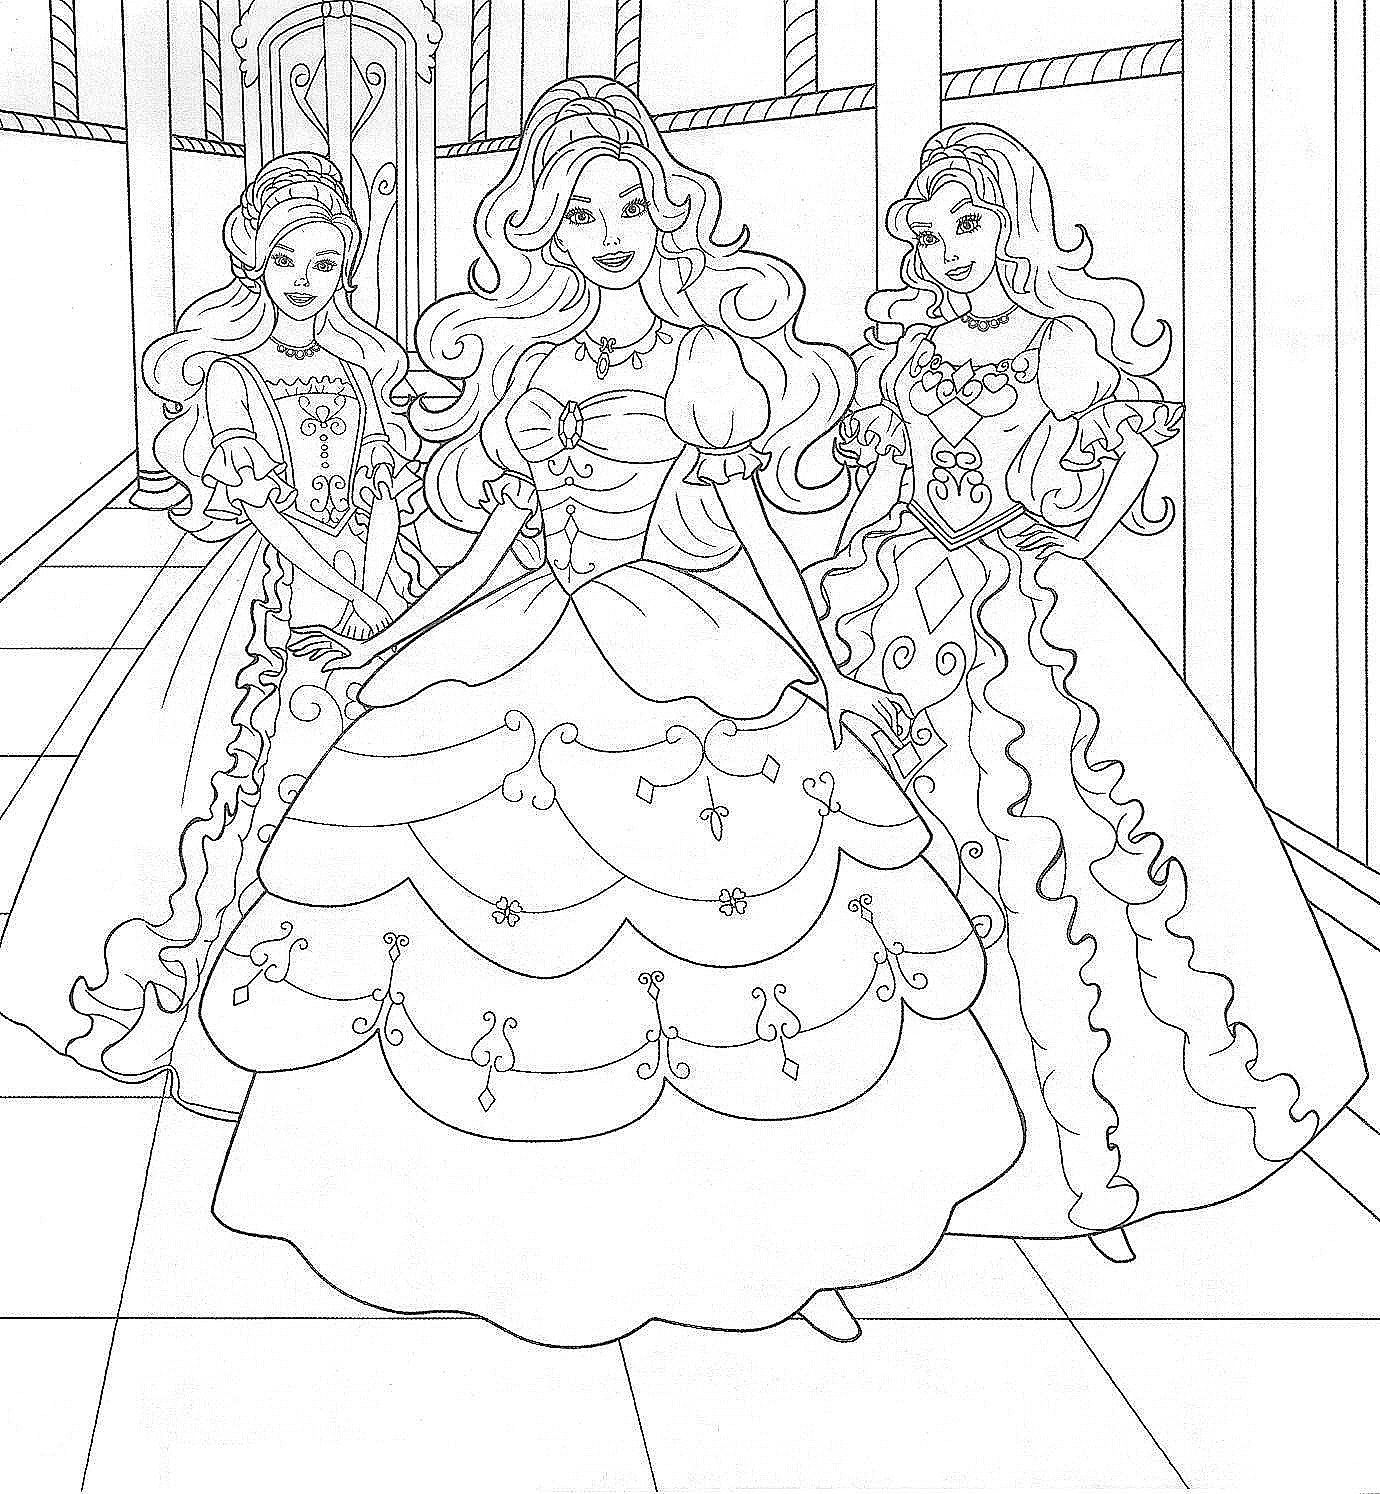 Colouring in pages games - Children Love To Portray Characters In Their Paintings Barbie Coloring Pages To Fill With Interesting